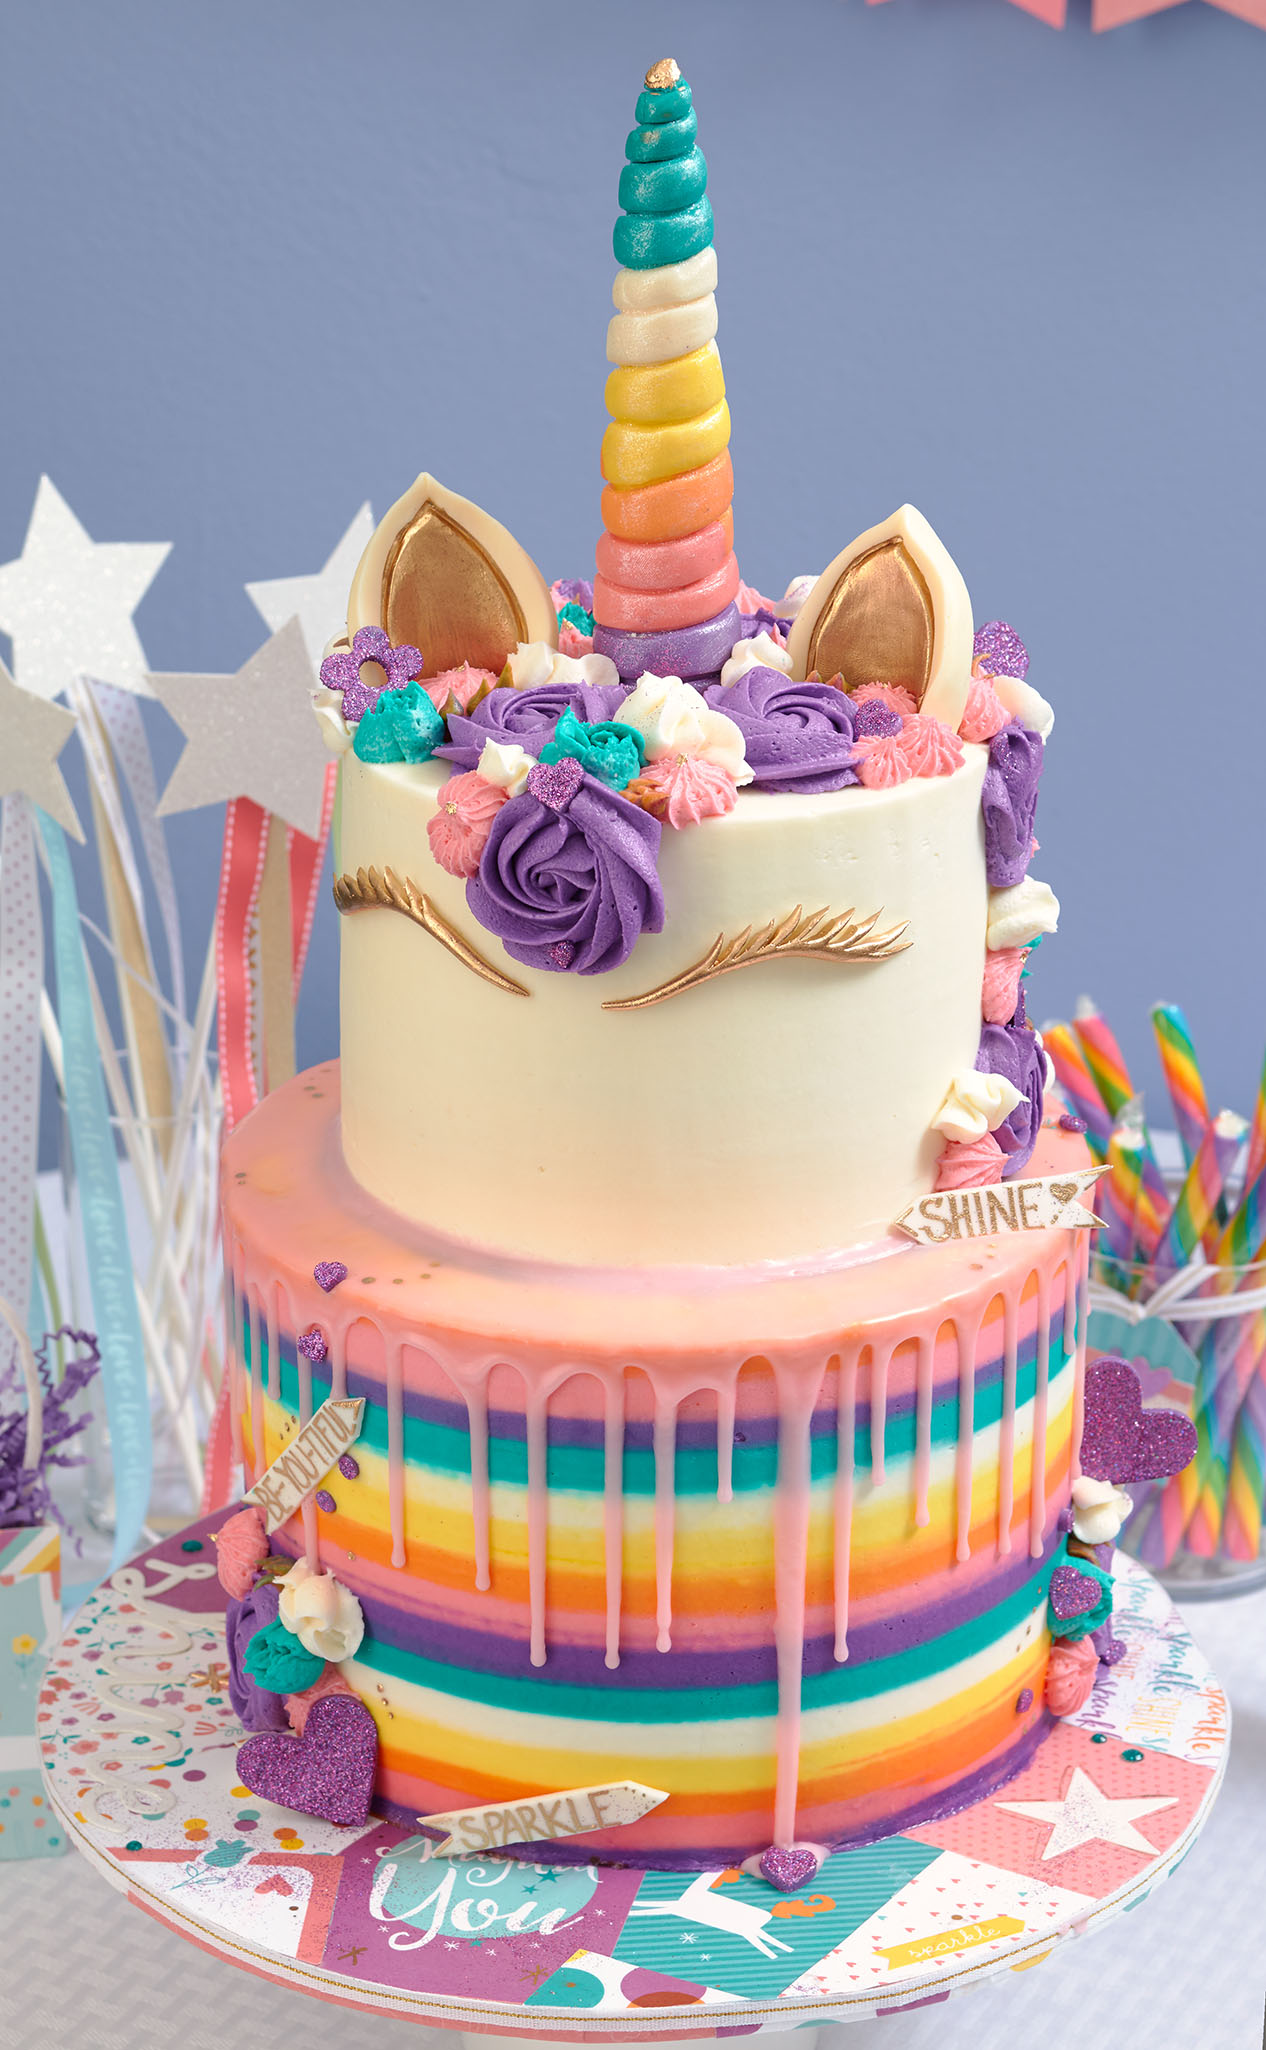 Awe Inspiring This Unicorn Party Takes The Cake Make It From Your Heart Birthday Cards Printable Inklcafe Filternl